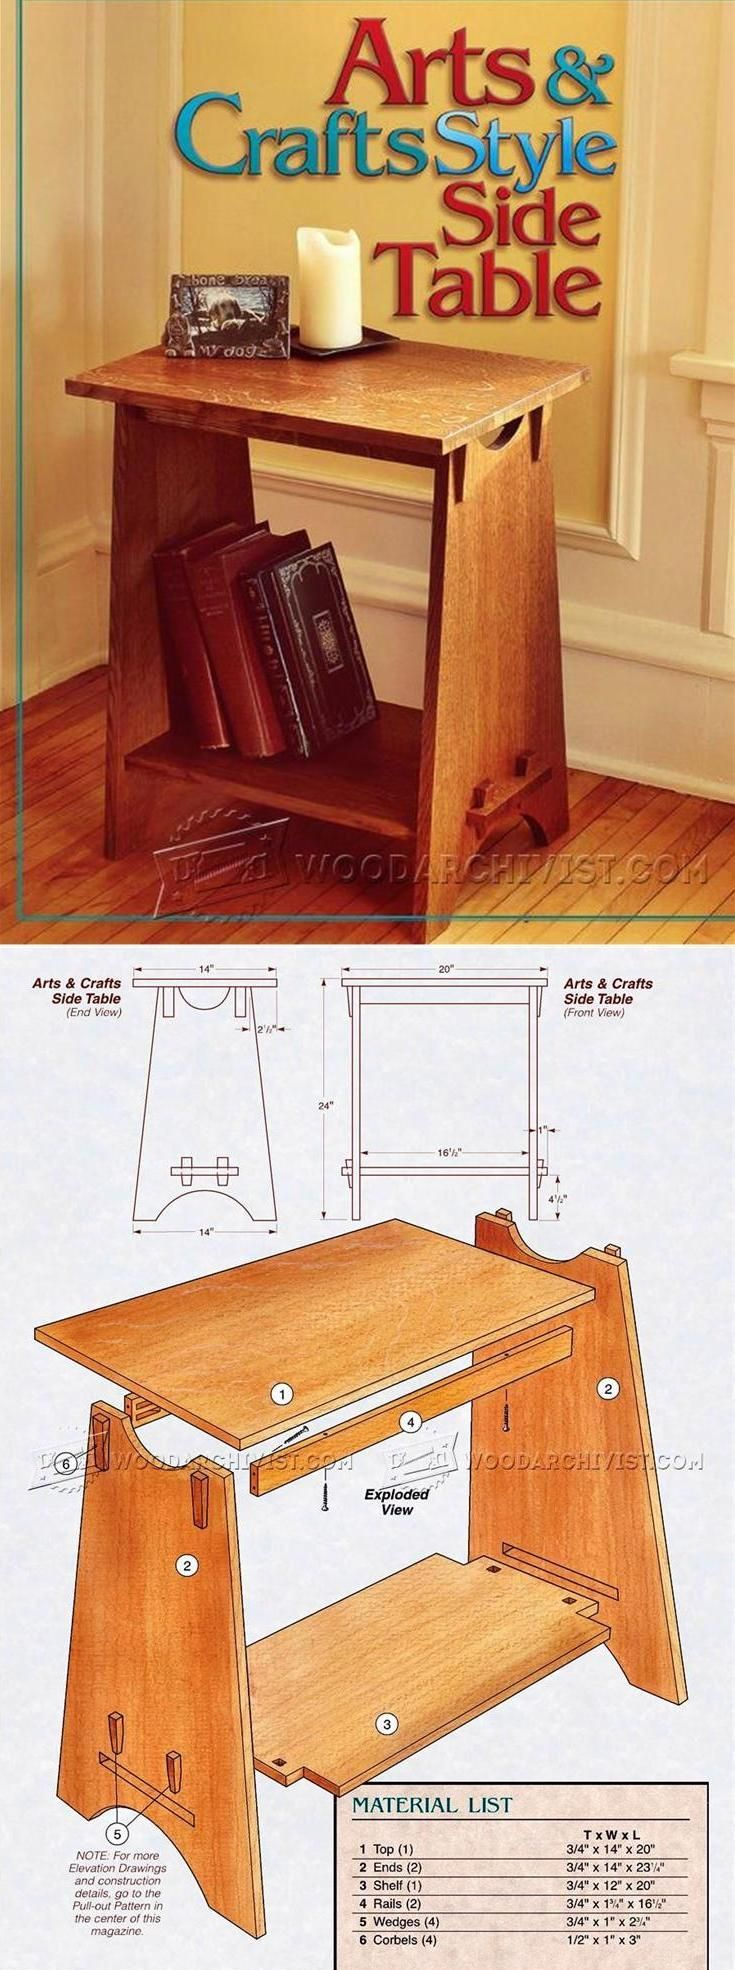 Arts and crafts furniture plans - Art And Crafts Style Side Table Plans Furniture Plans And Projects Woodarchivist Com